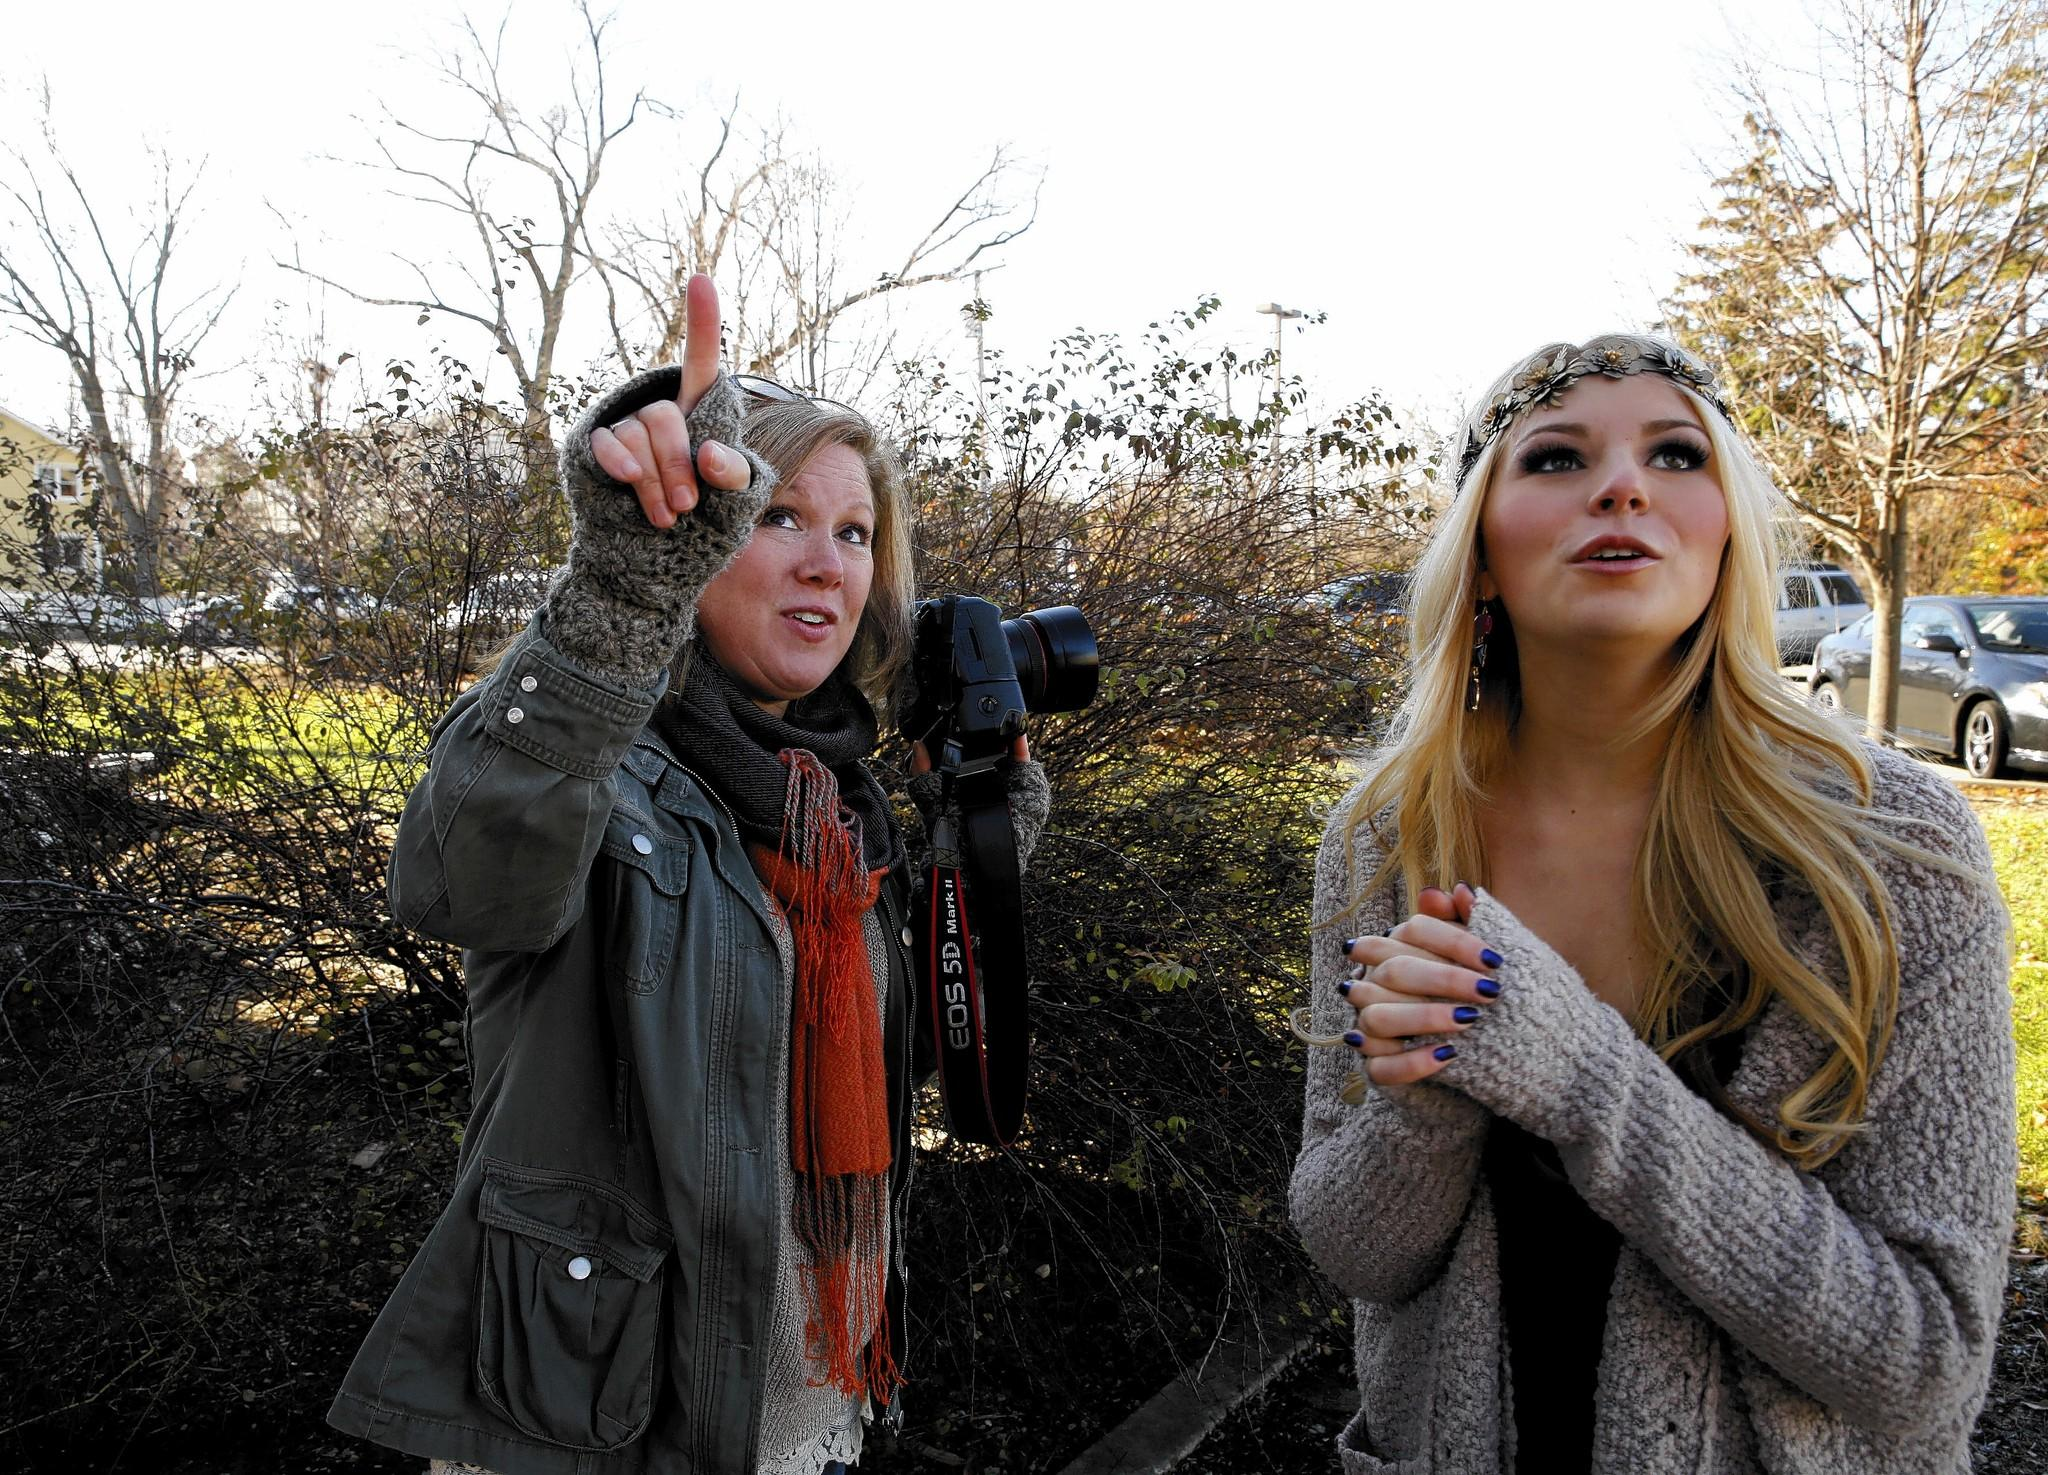 Alicia Johnson, owner of Alicia's Photography, works with Naperville North High School senior Magee Campana, 17, of Naperville, on a portrait shoot.